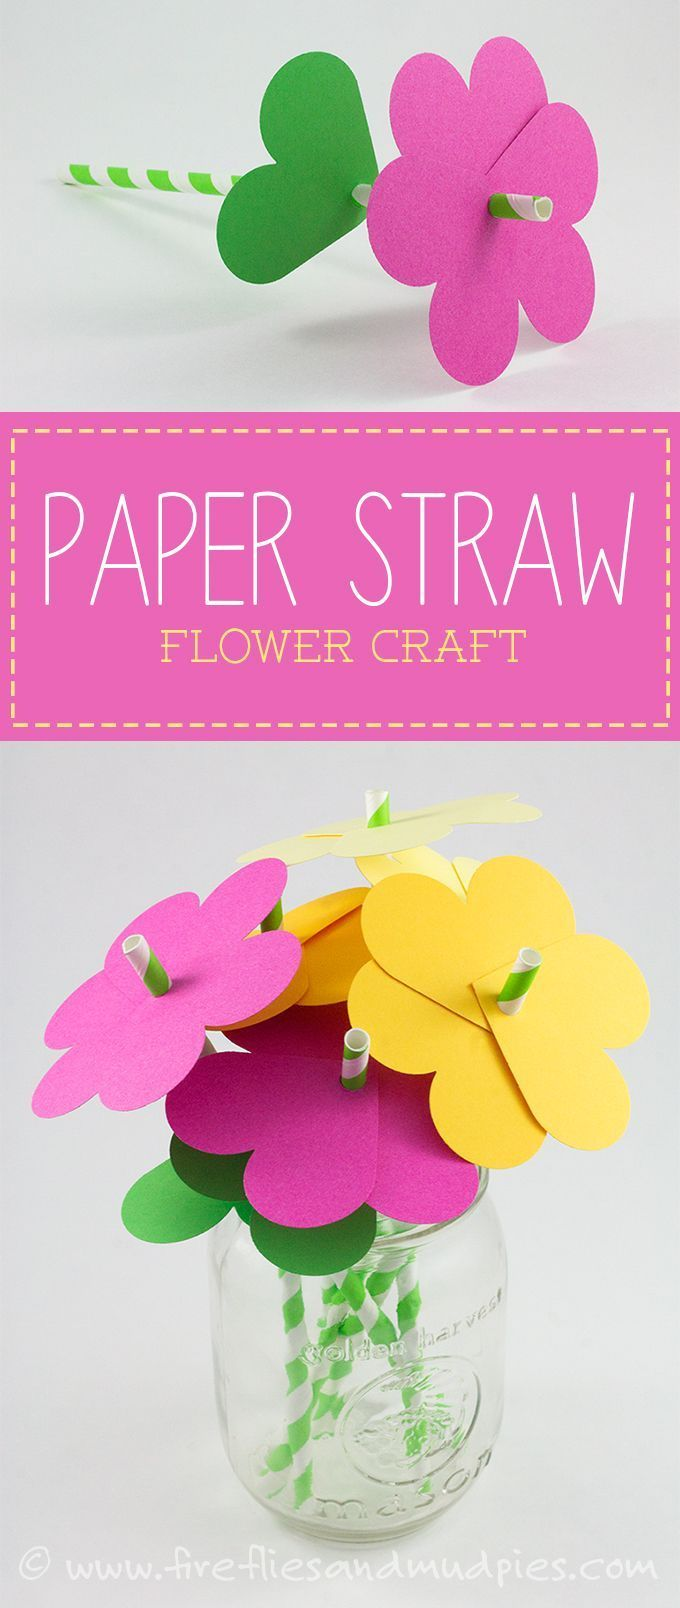 How to make simple paper heart flowers flower crafts fireflies paper straw flower craft perfect for spring fireflies and mud pies mightylinksfo